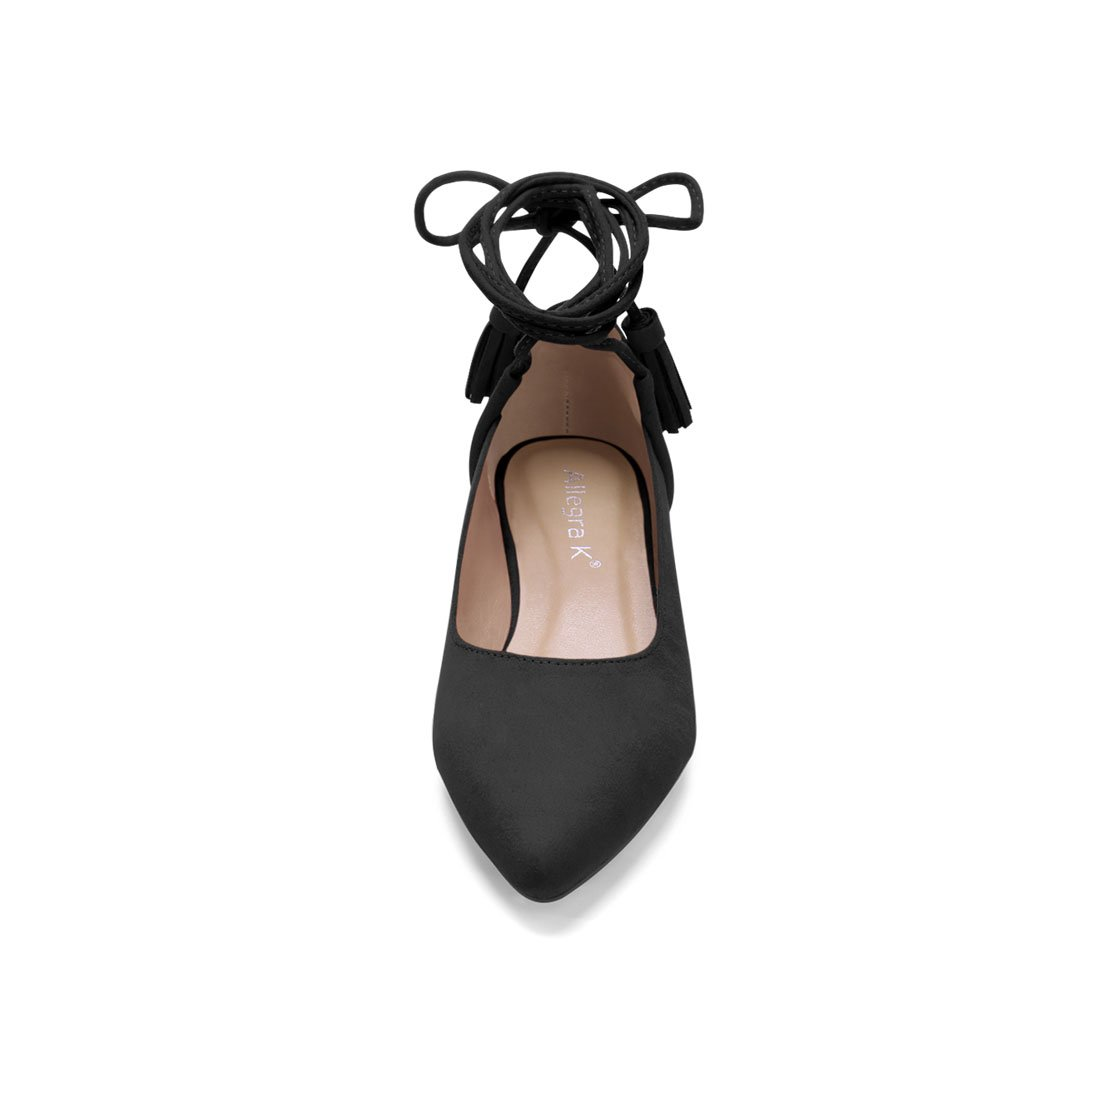 Allegra K Womens Pointed Toe Tassel Lace Tie Up Flats Flat Shoes